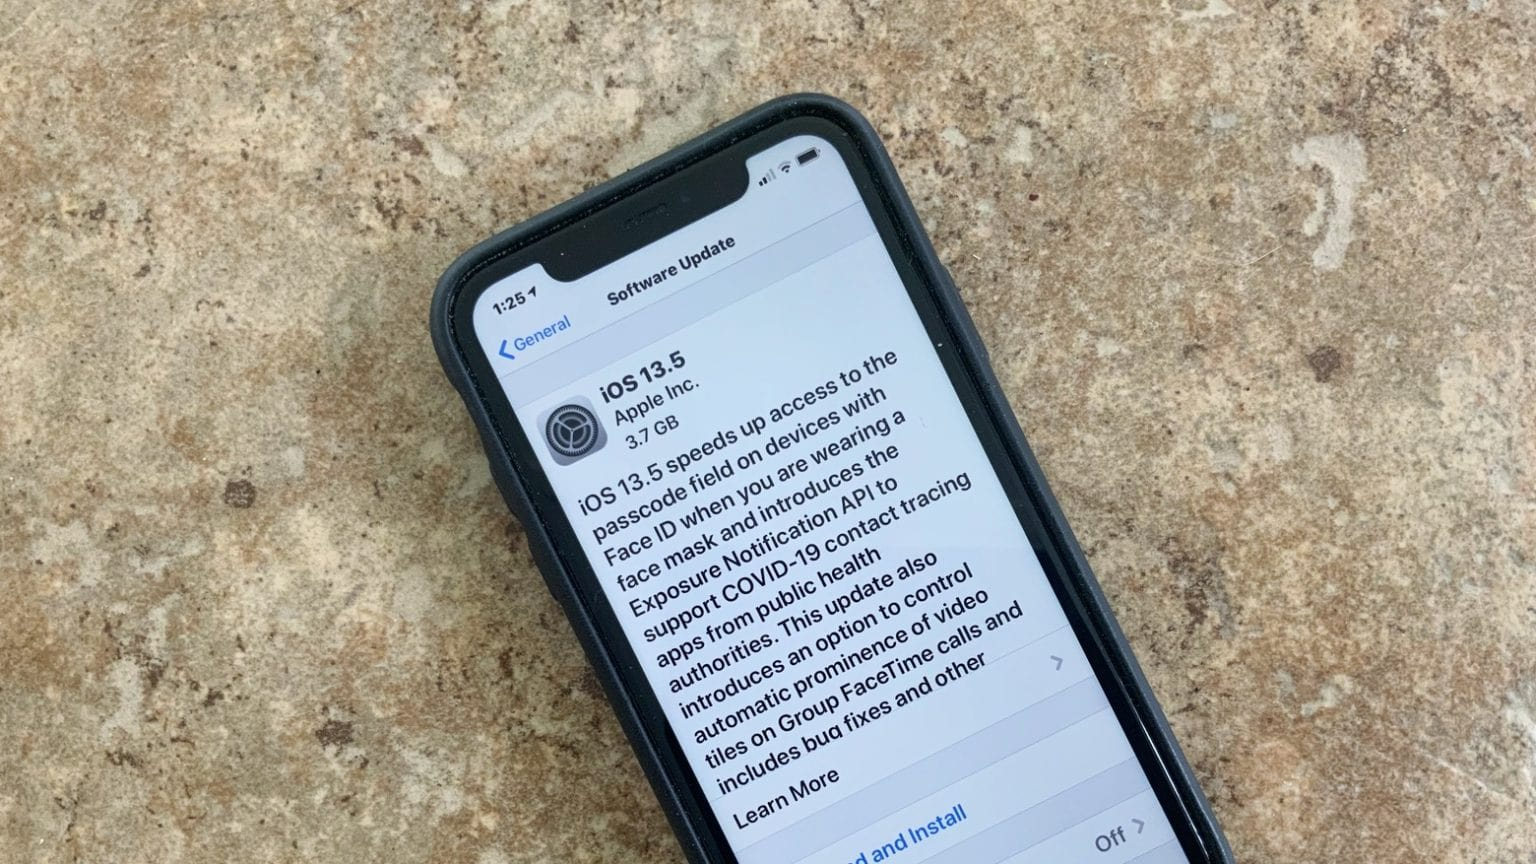 iOS 13.5 golden master is available only to developers.